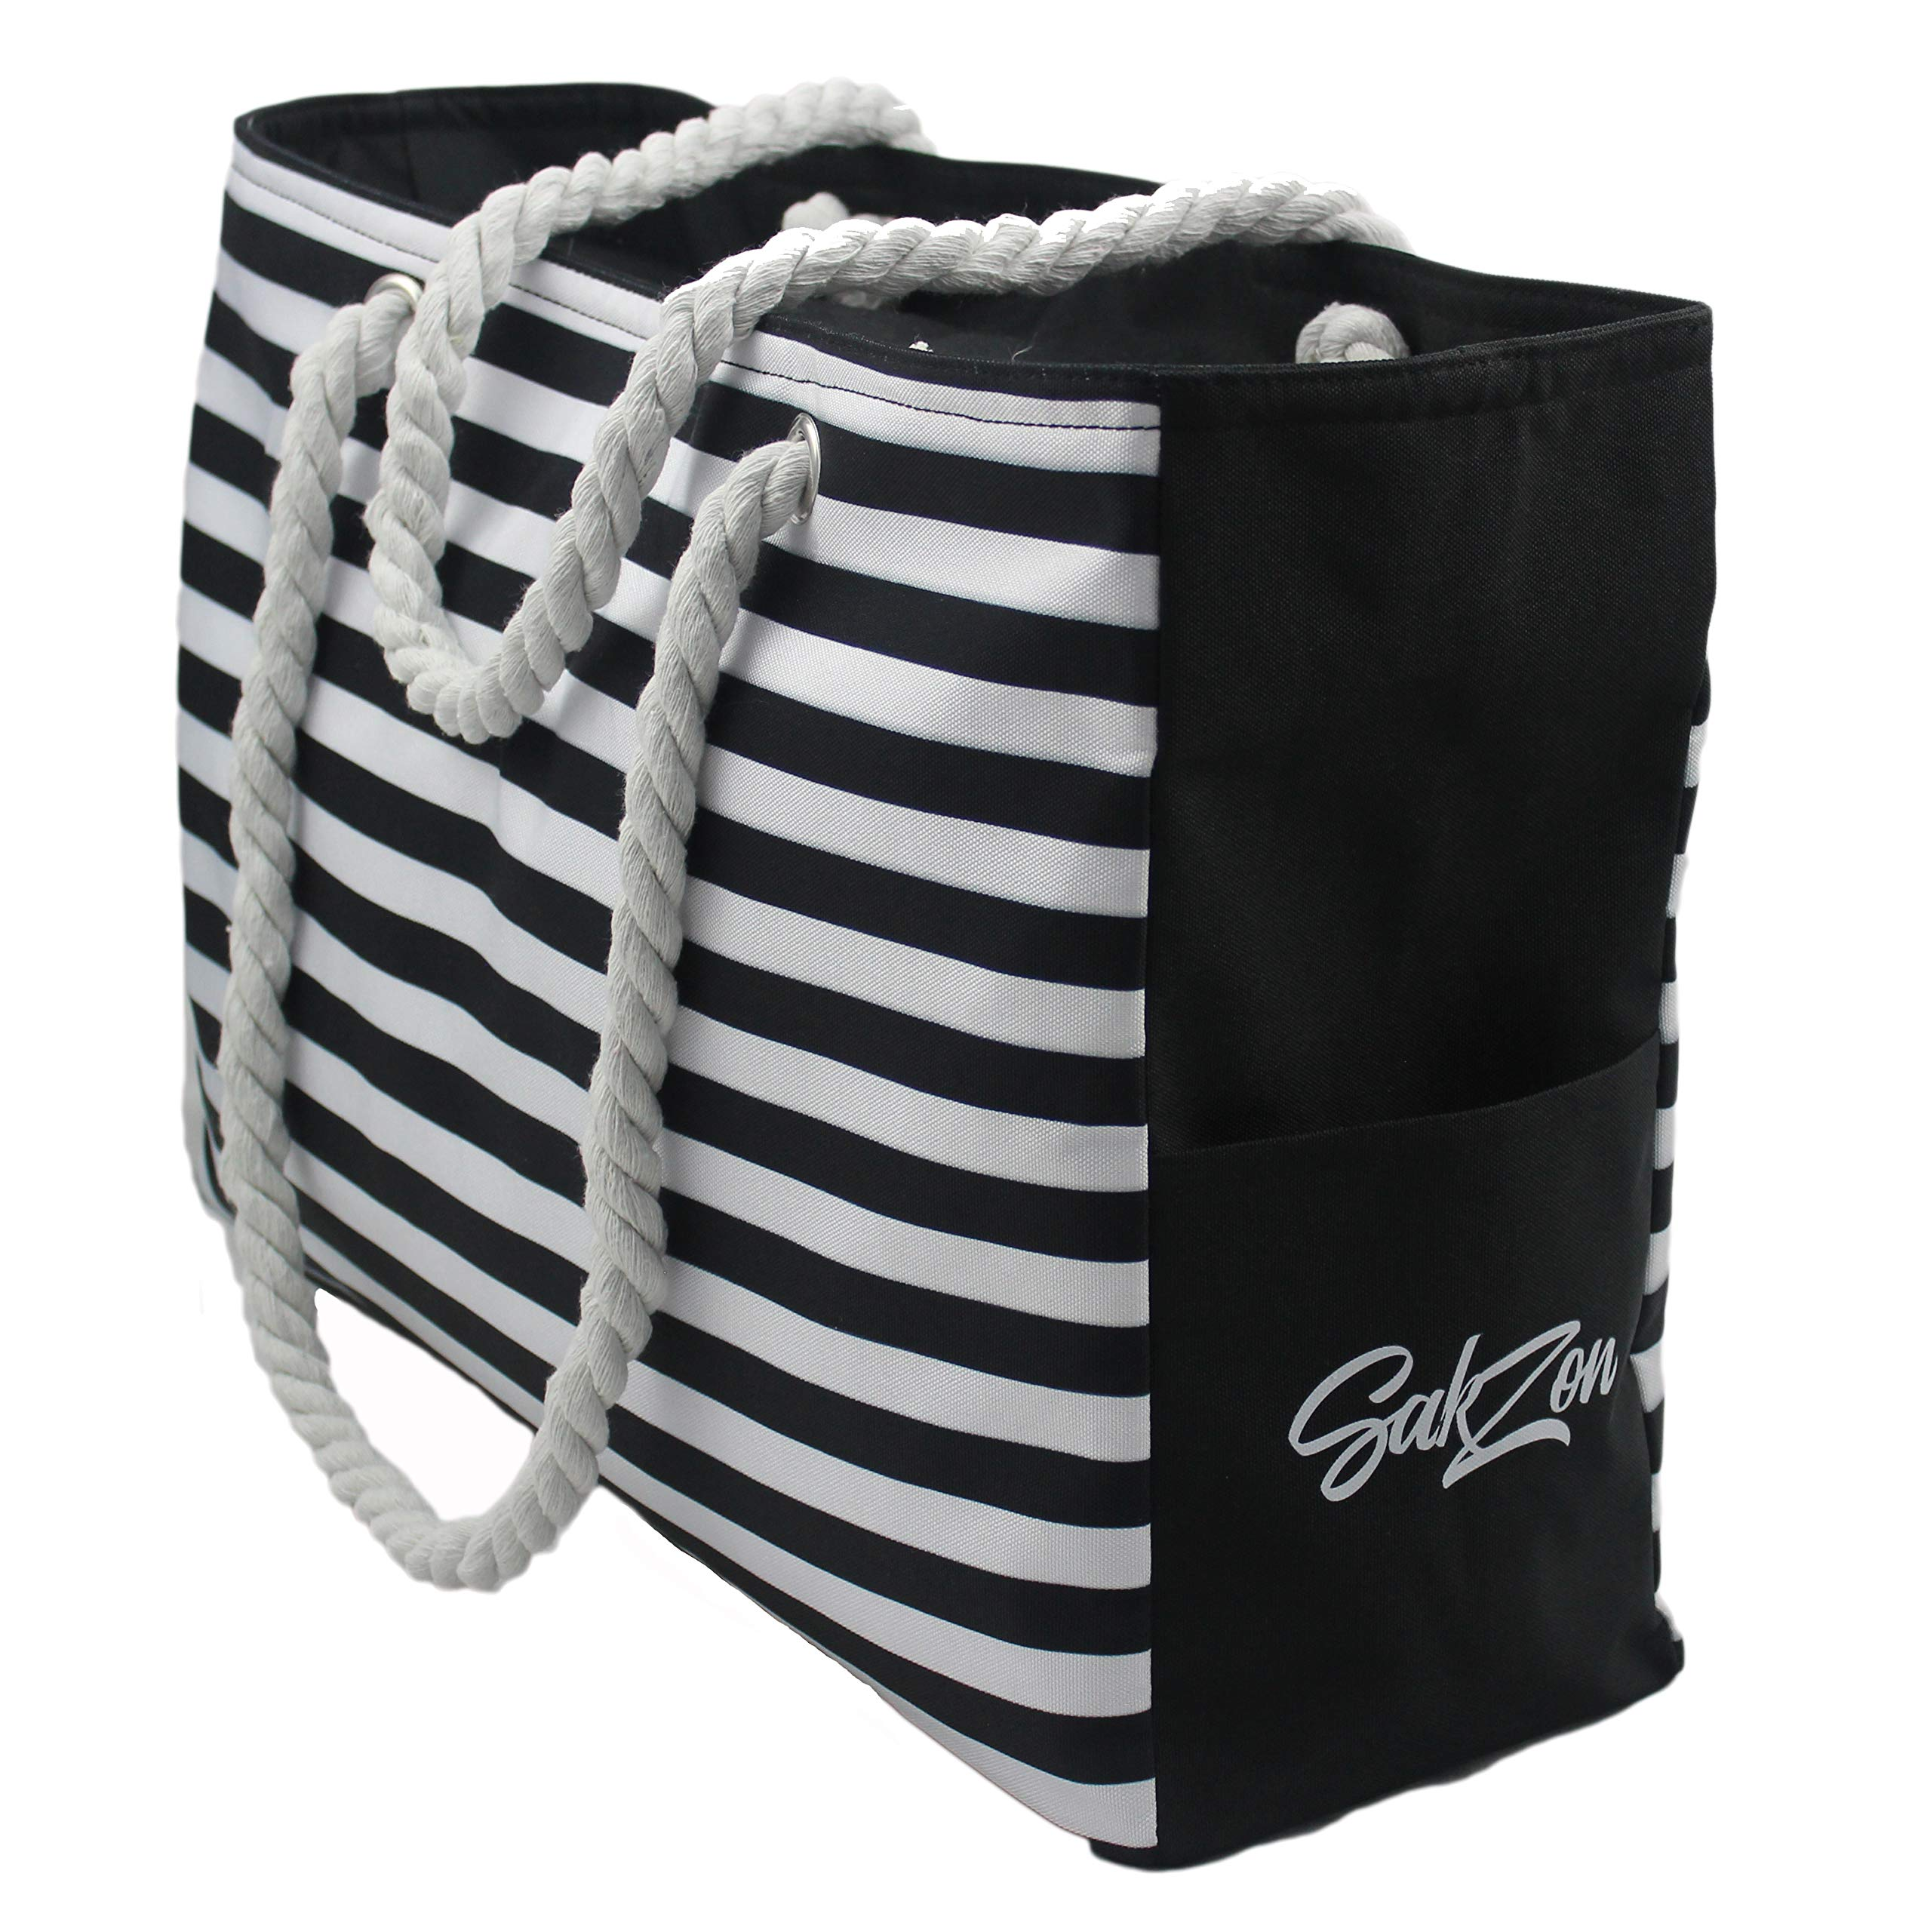 Beach Bag - Waterproof, large (L 18.5'' x H 12.5'' x W 5.8''), with zippered top, cotton rope handles, bottle holders, internal & external pockets (black)